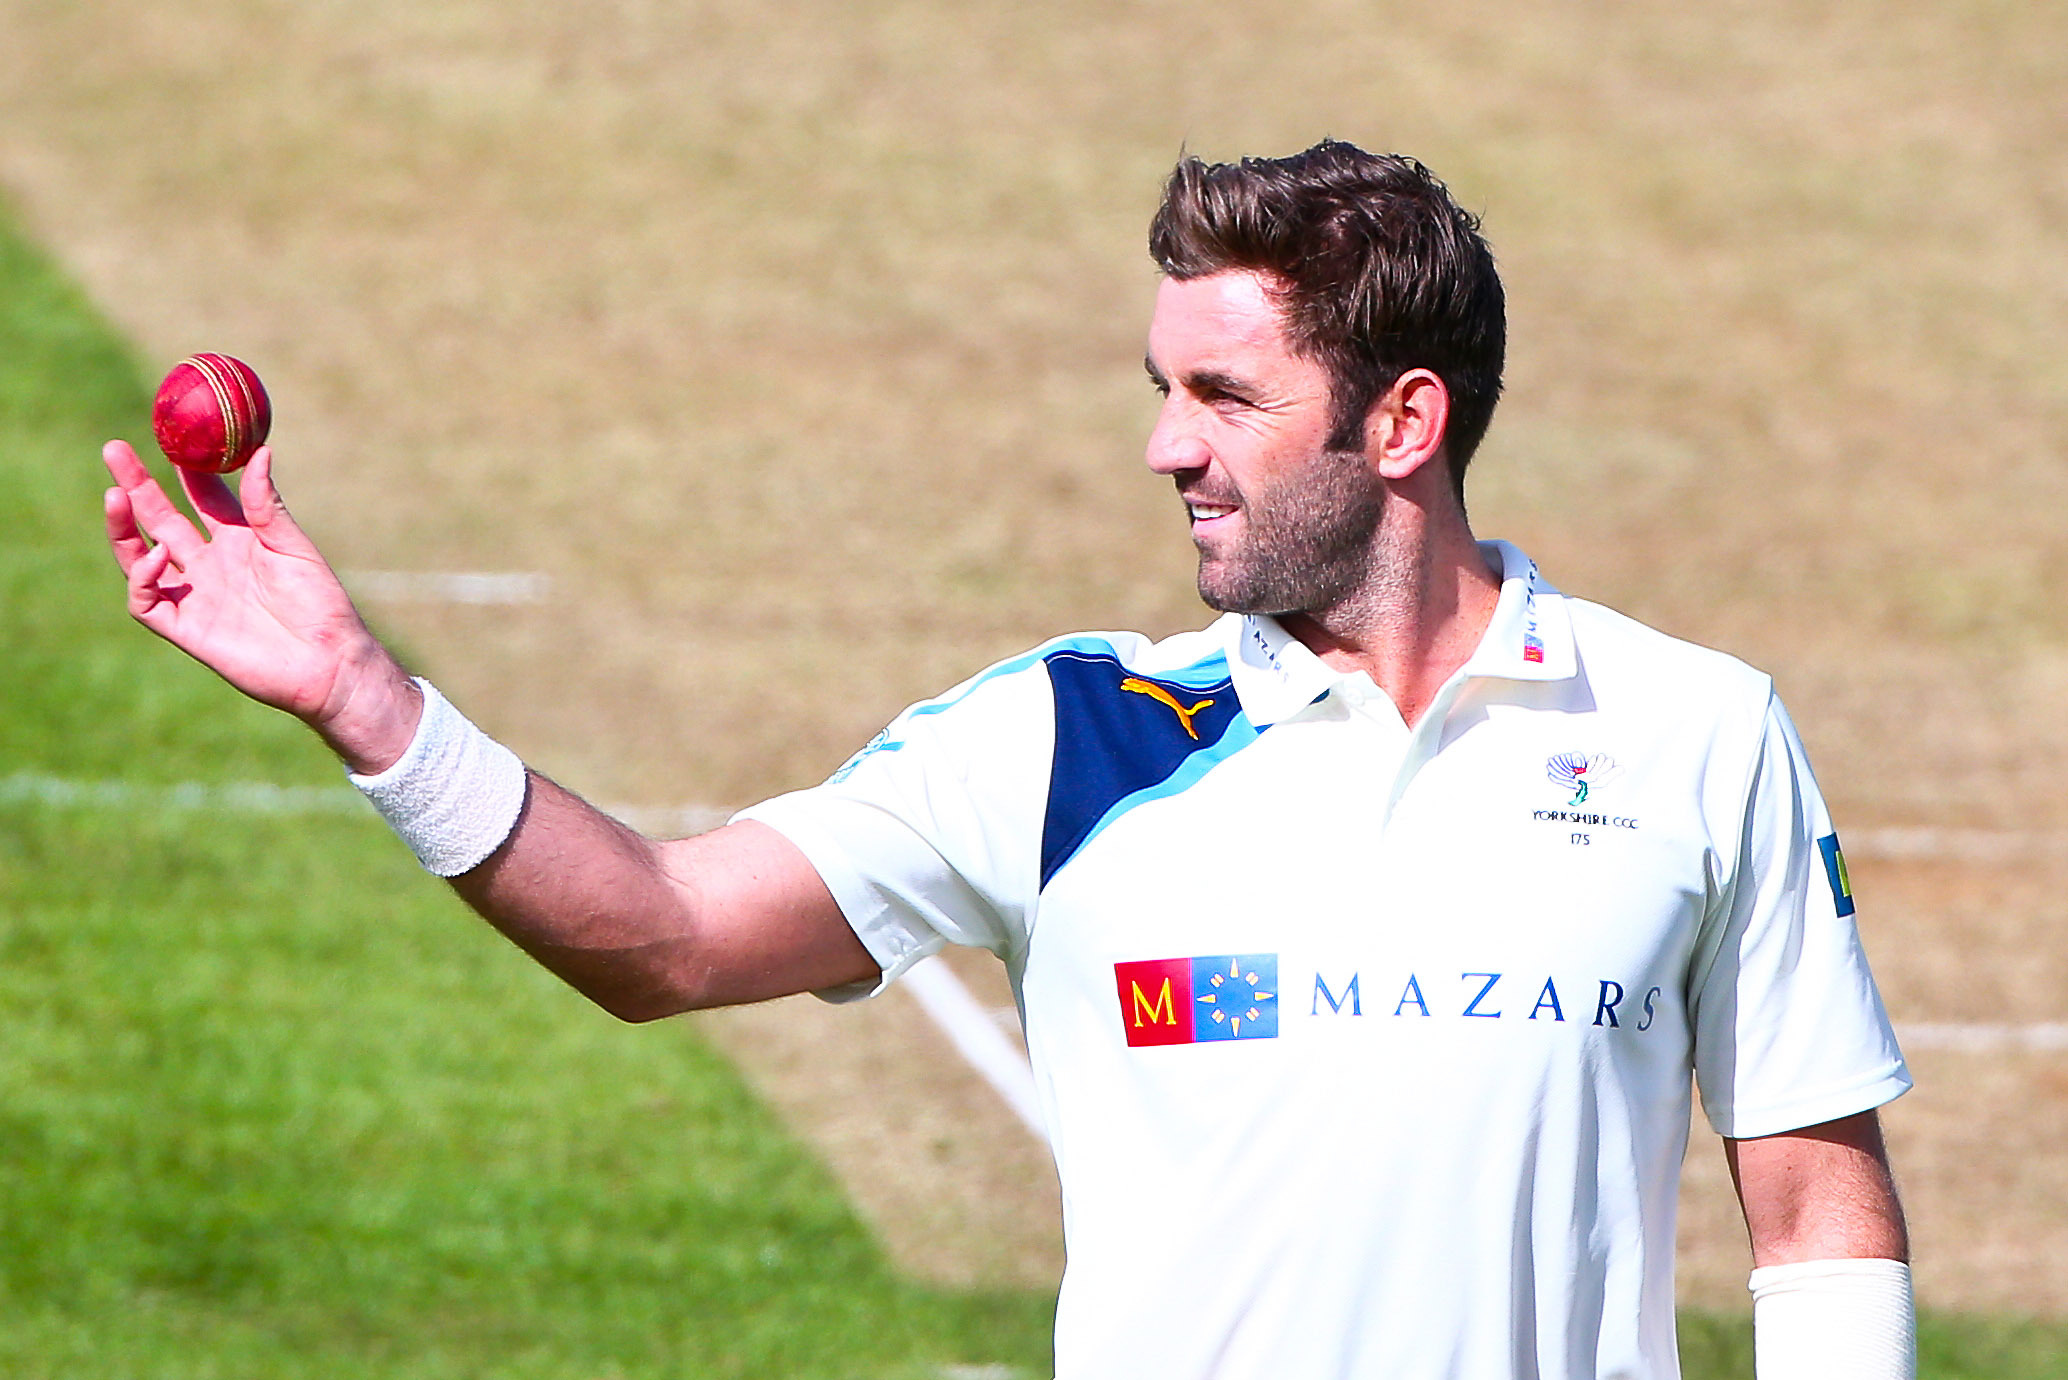 LATE WICKETS: Yorkshire seamer Liam Plunkett